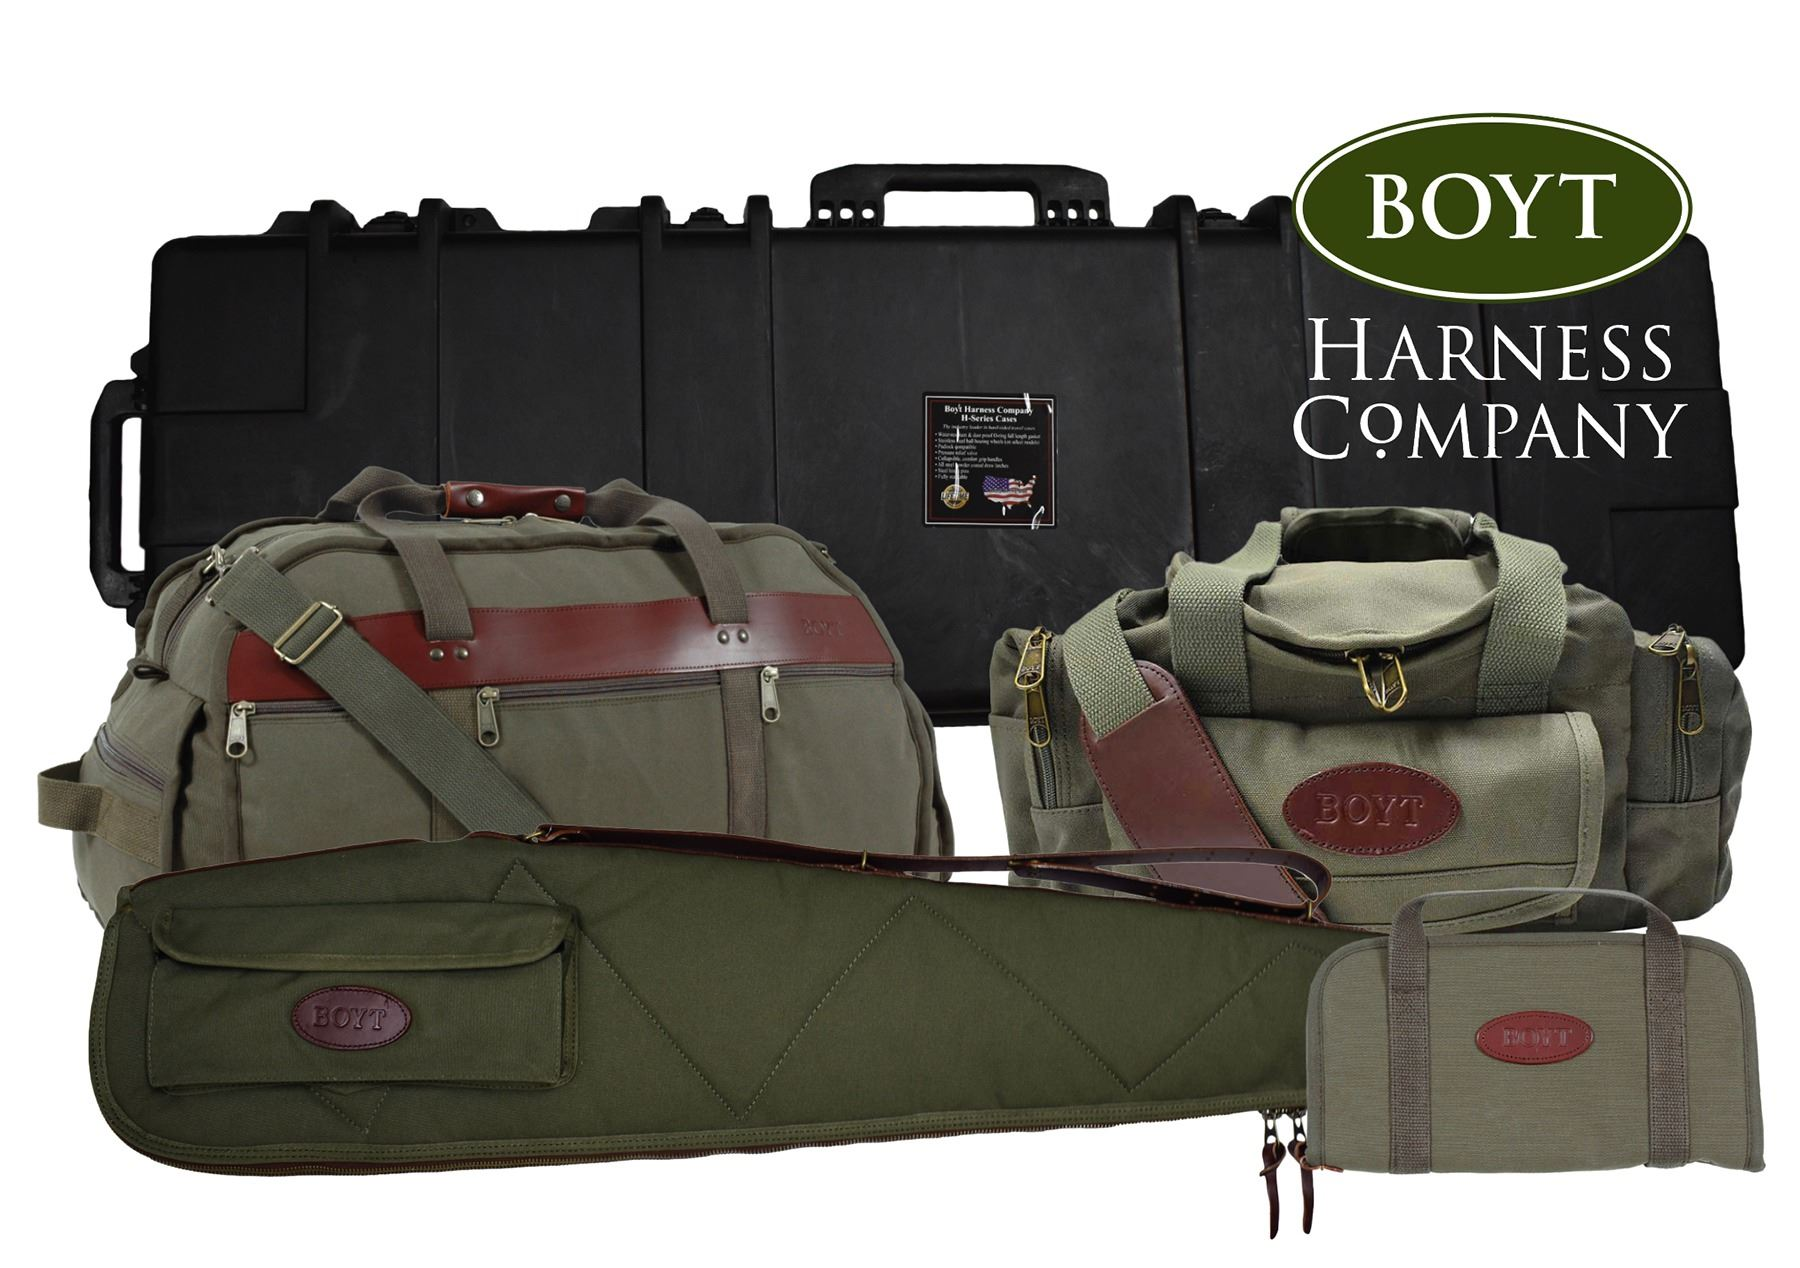 BOYT HARNESS COMPANY – HUNTERS PACKAGE (100% FULLY DONATION) BOYT HARNESS